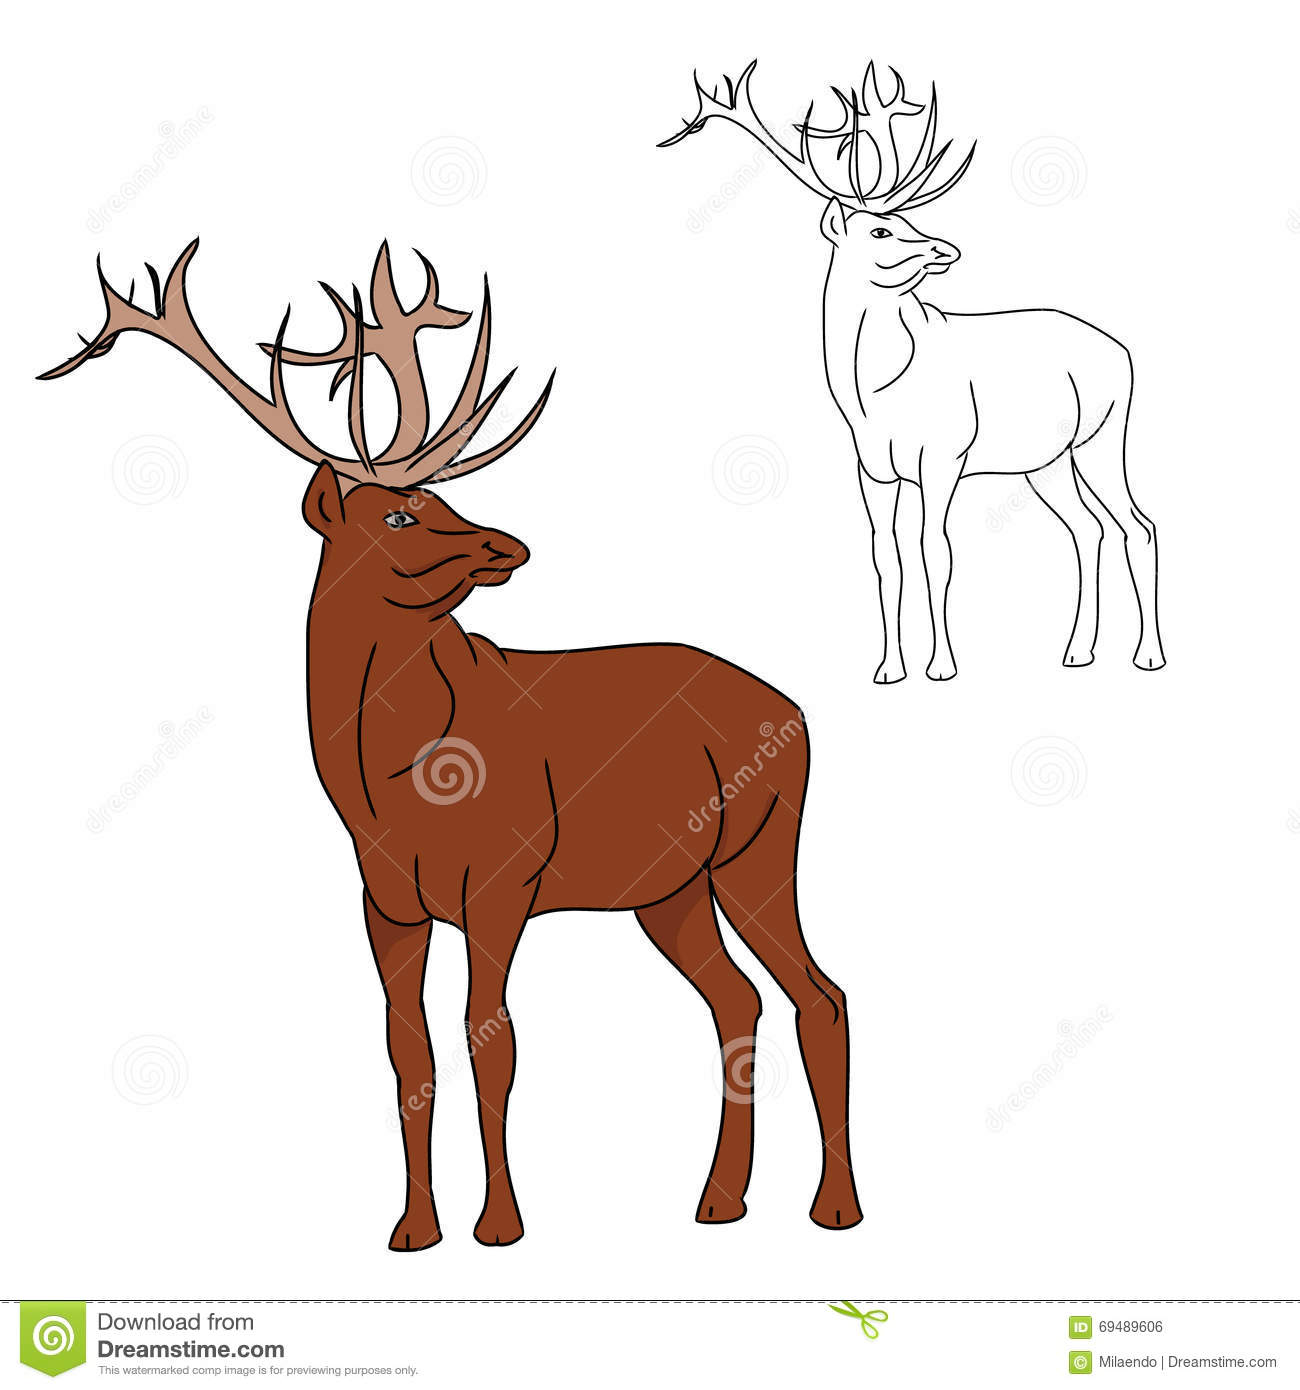 Deer Contour Line Drawing : Deer color and contour image stock vector